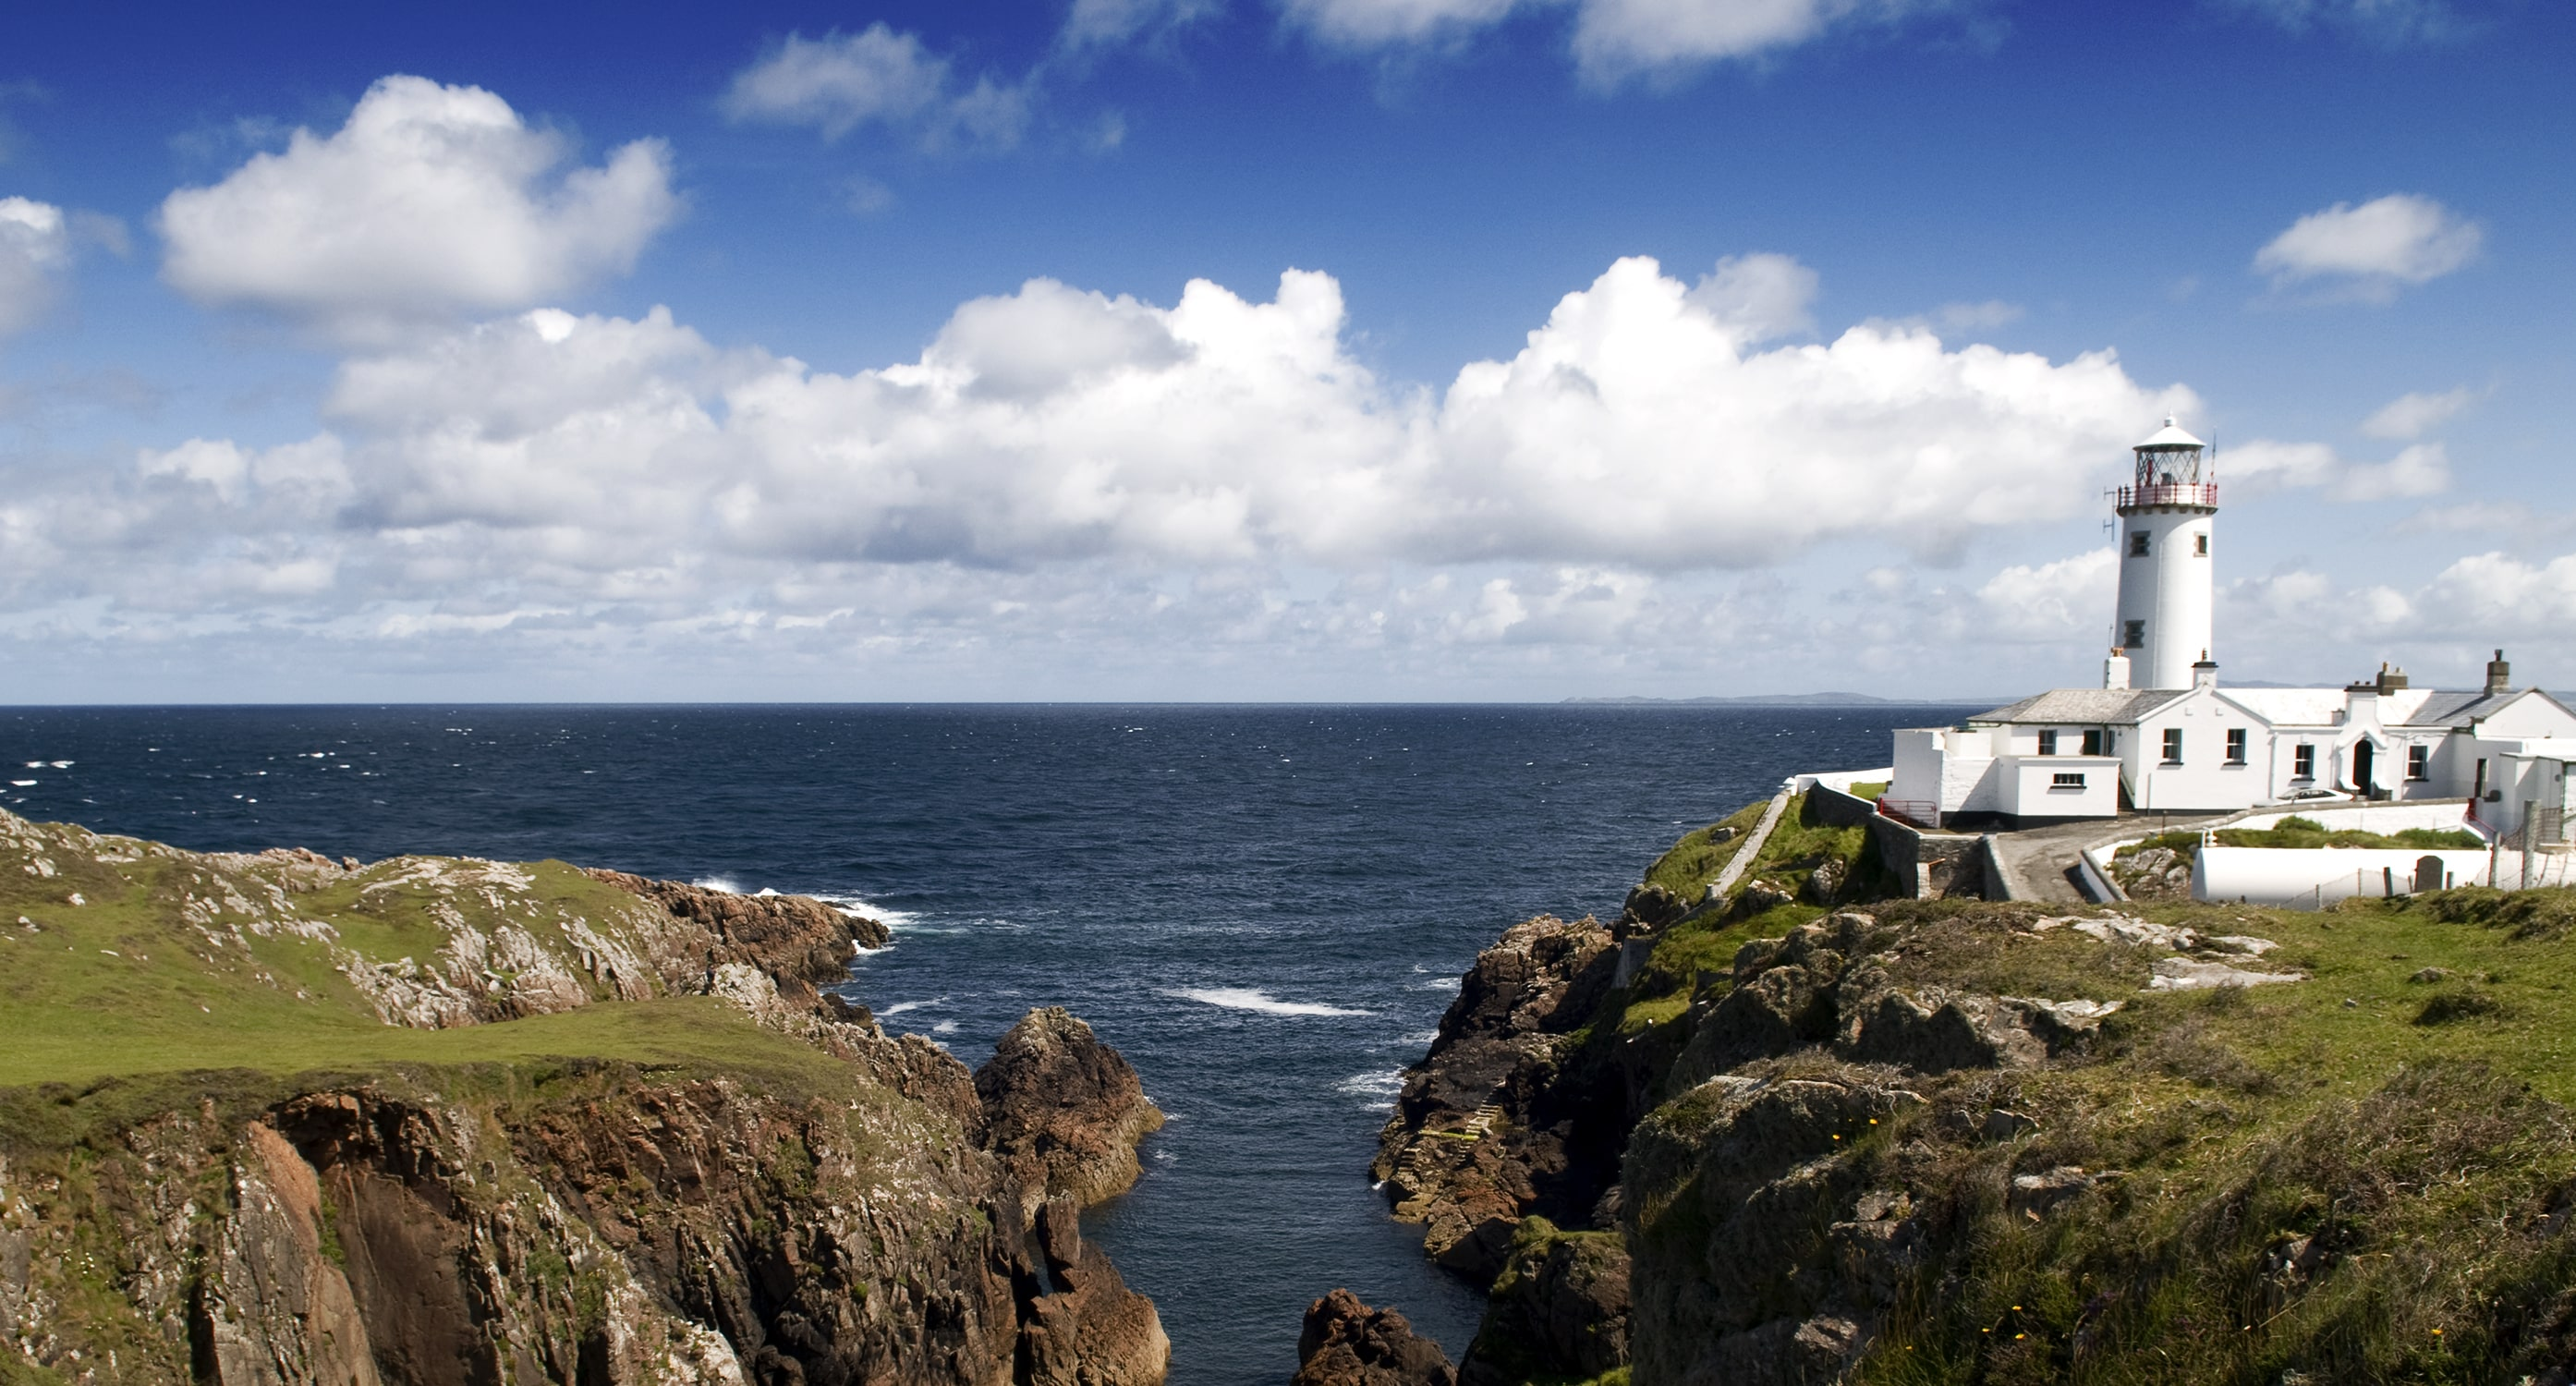 Climbing Fanad Head Lighthouse is an awesome thing to do in Ireland